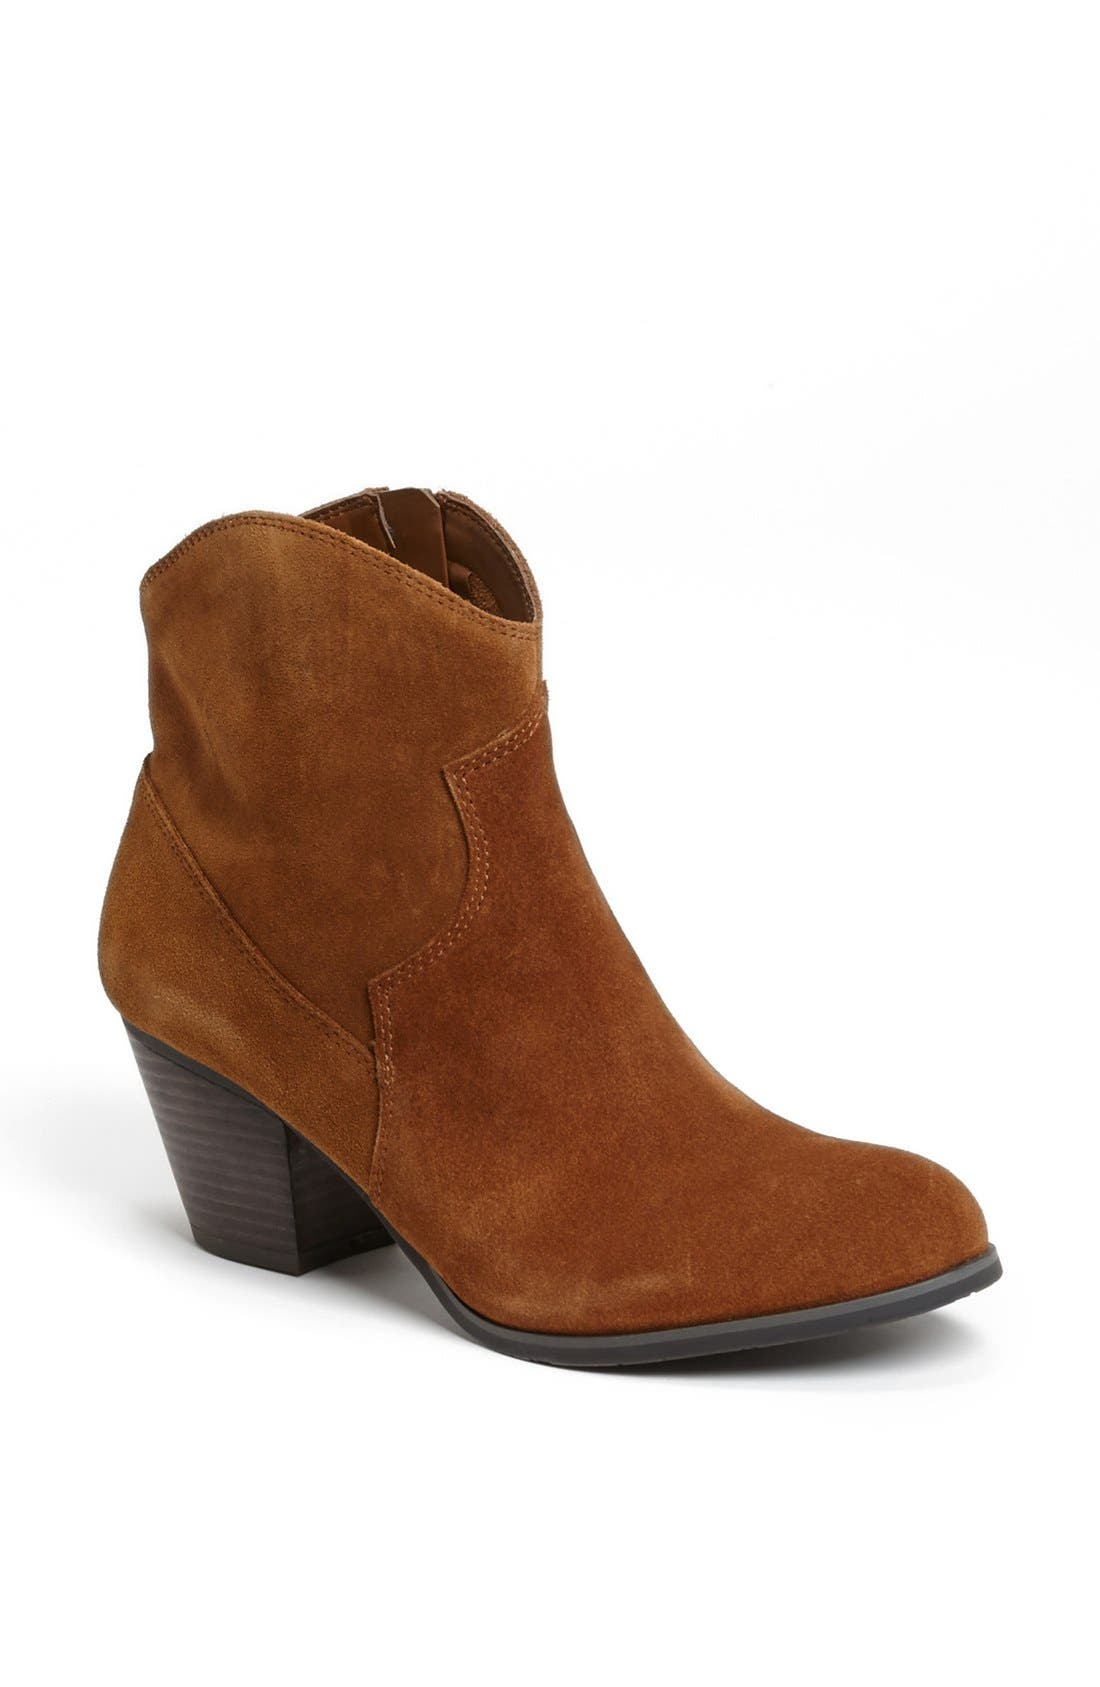 Alternate Image 1 Selected - Franco Sarto 'Hutch' Leather Bootie